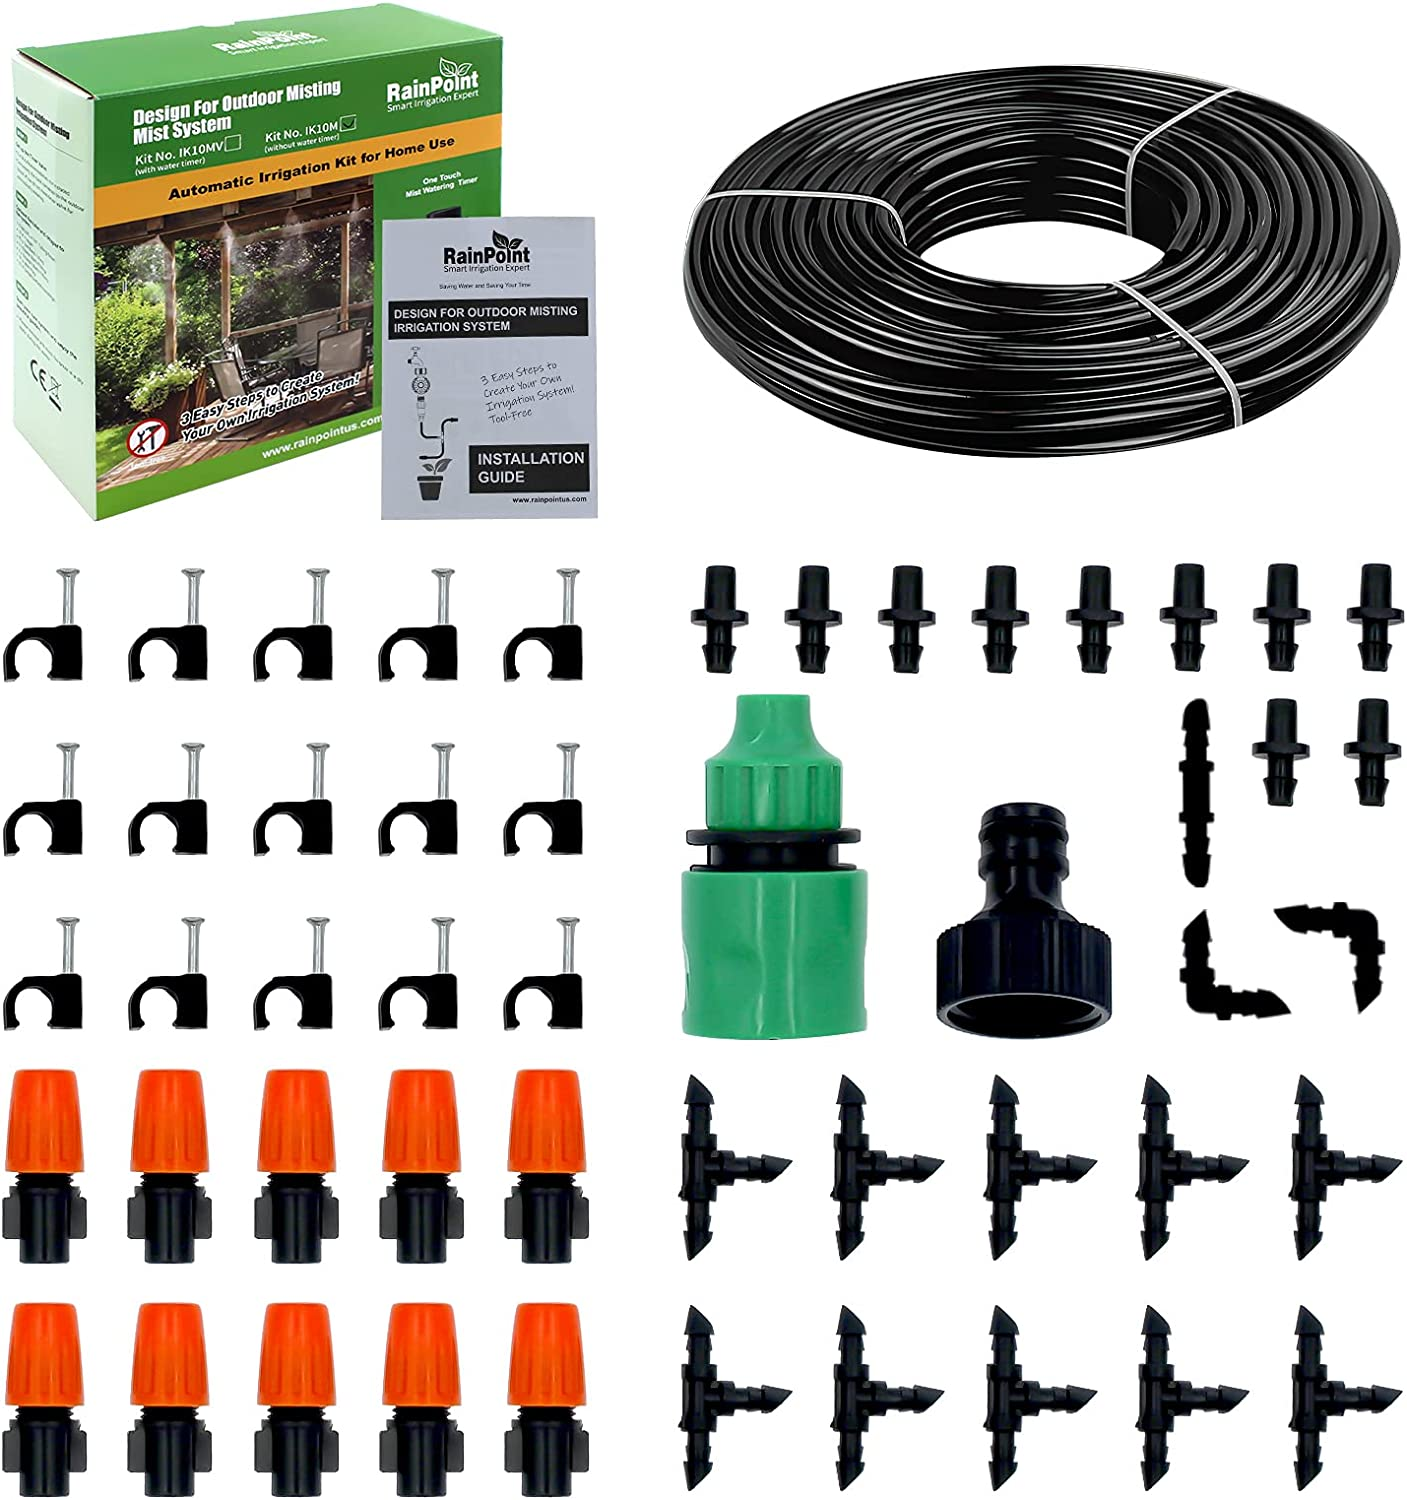 Drip Irrigation Kit, Saving Water Automatic Irrigation Equipment Set,Garden Irrigation System with Adjustable Nozzle